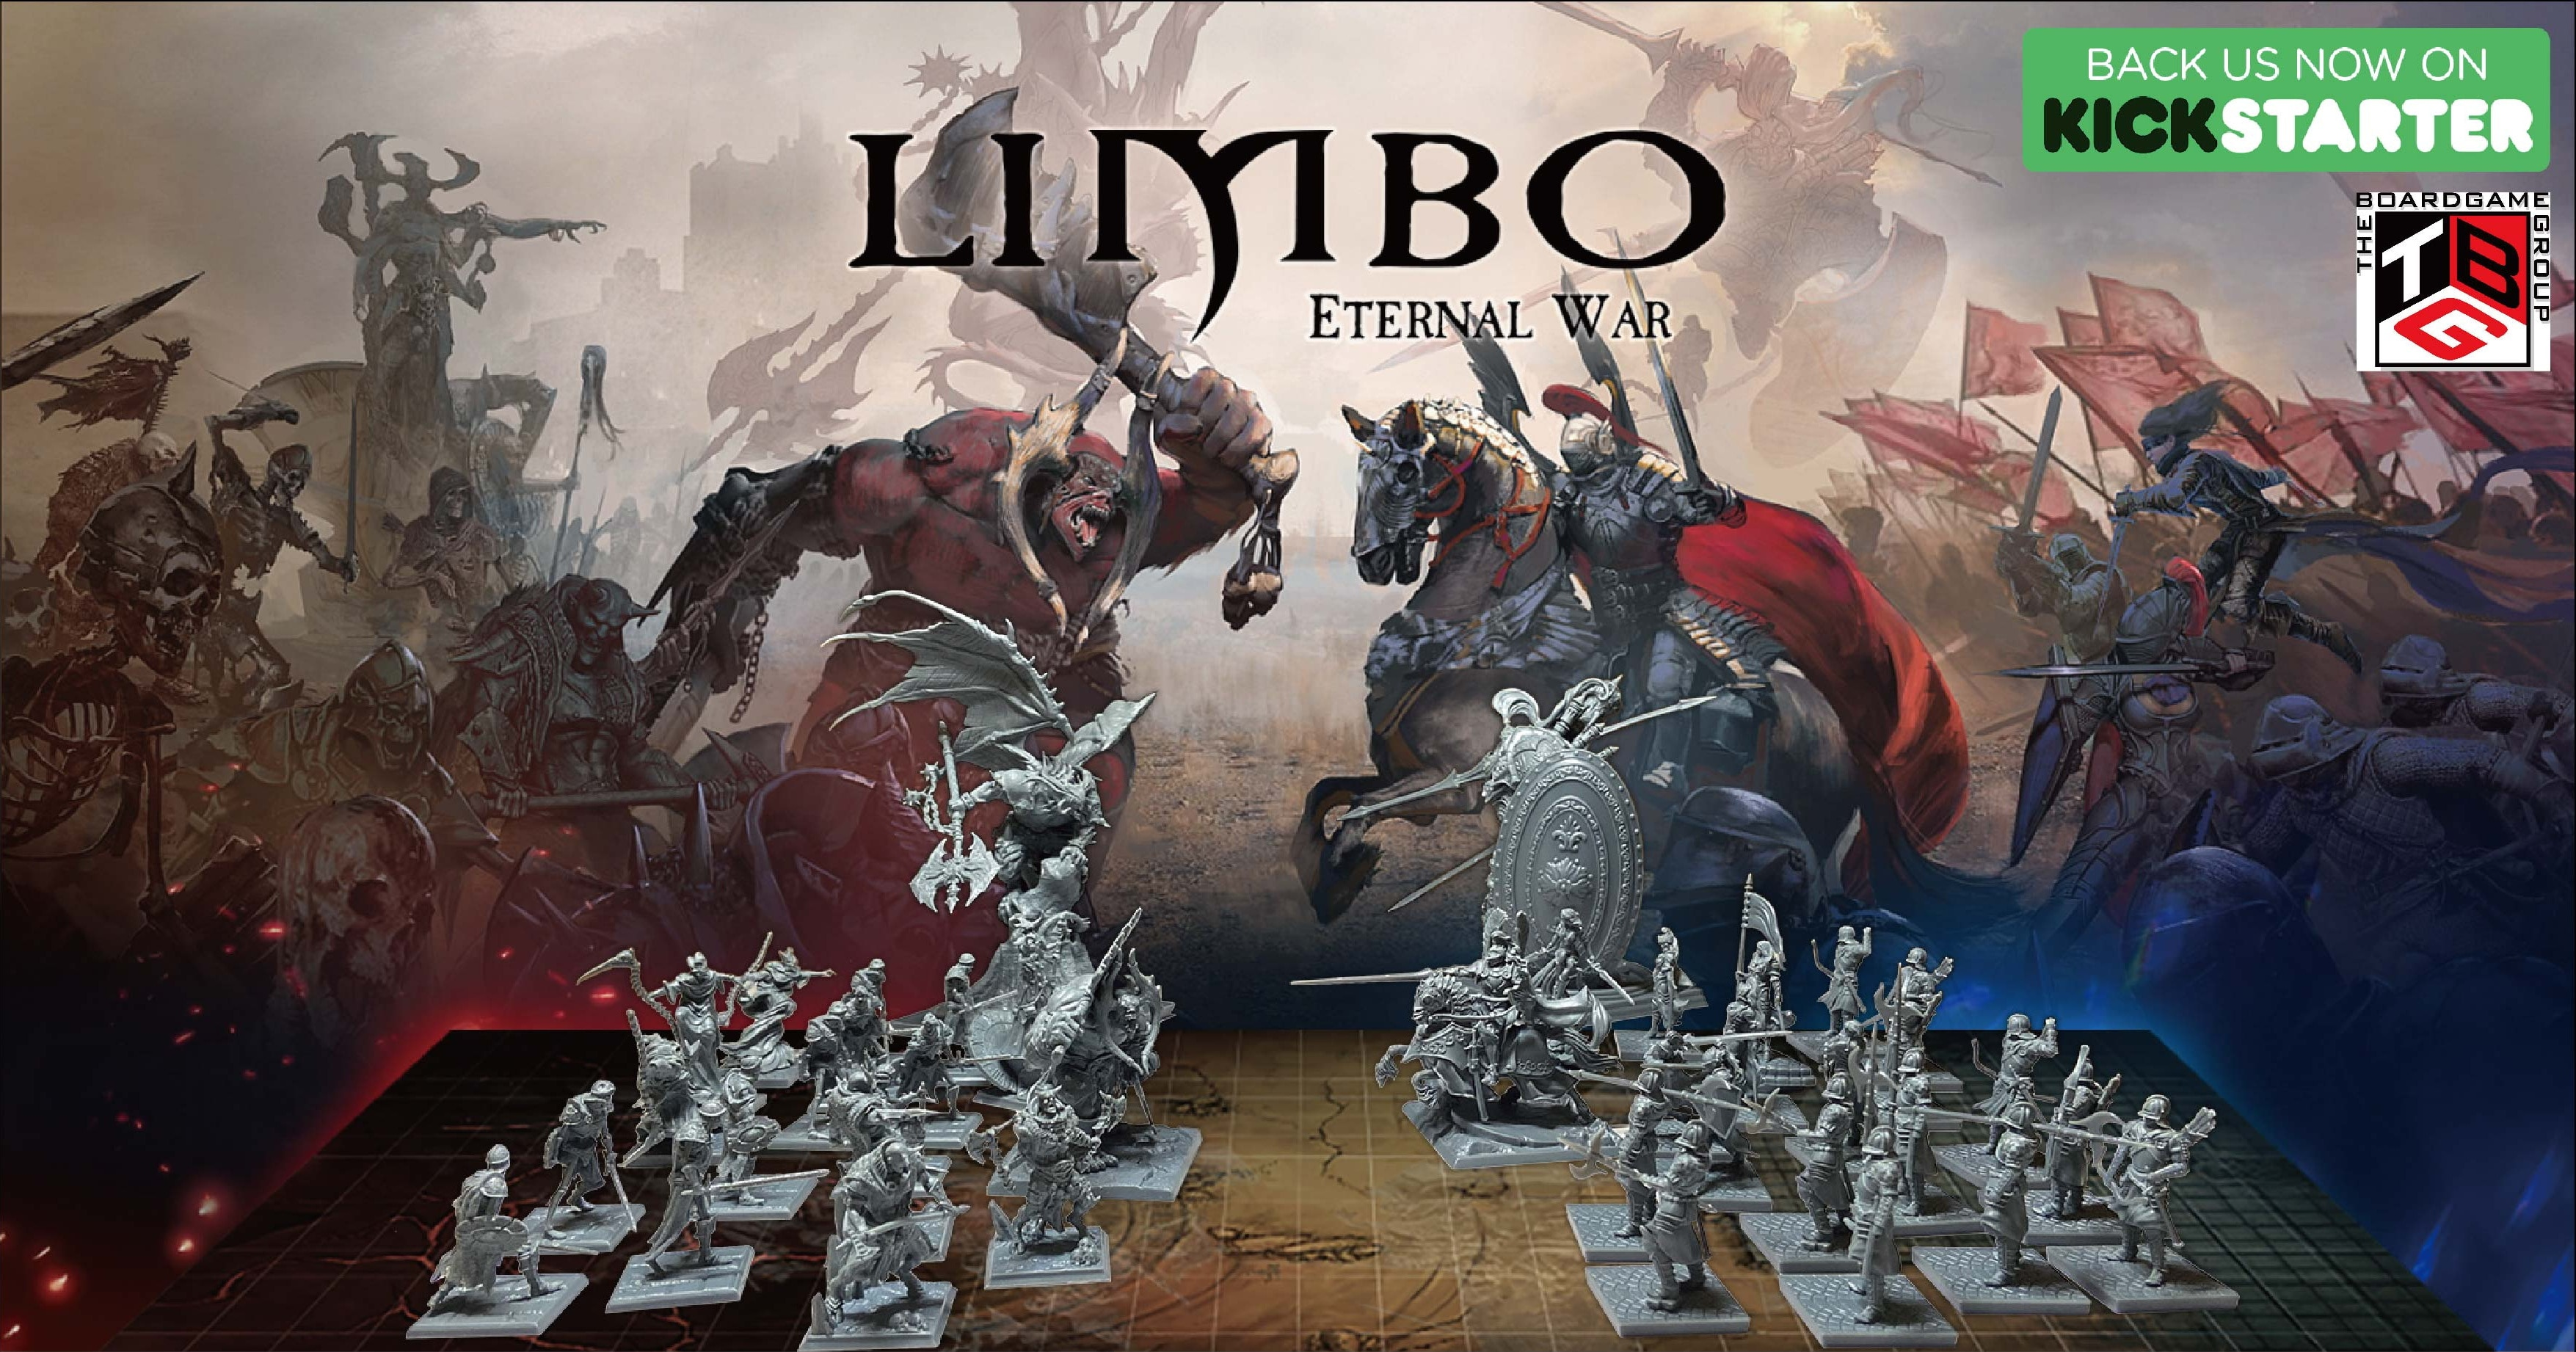 Enter to win a copy of the Board Game 'Limbo: Eternal War' 1.5 Pledge. Courtesy of The Boardgame Group. Giveaway Image